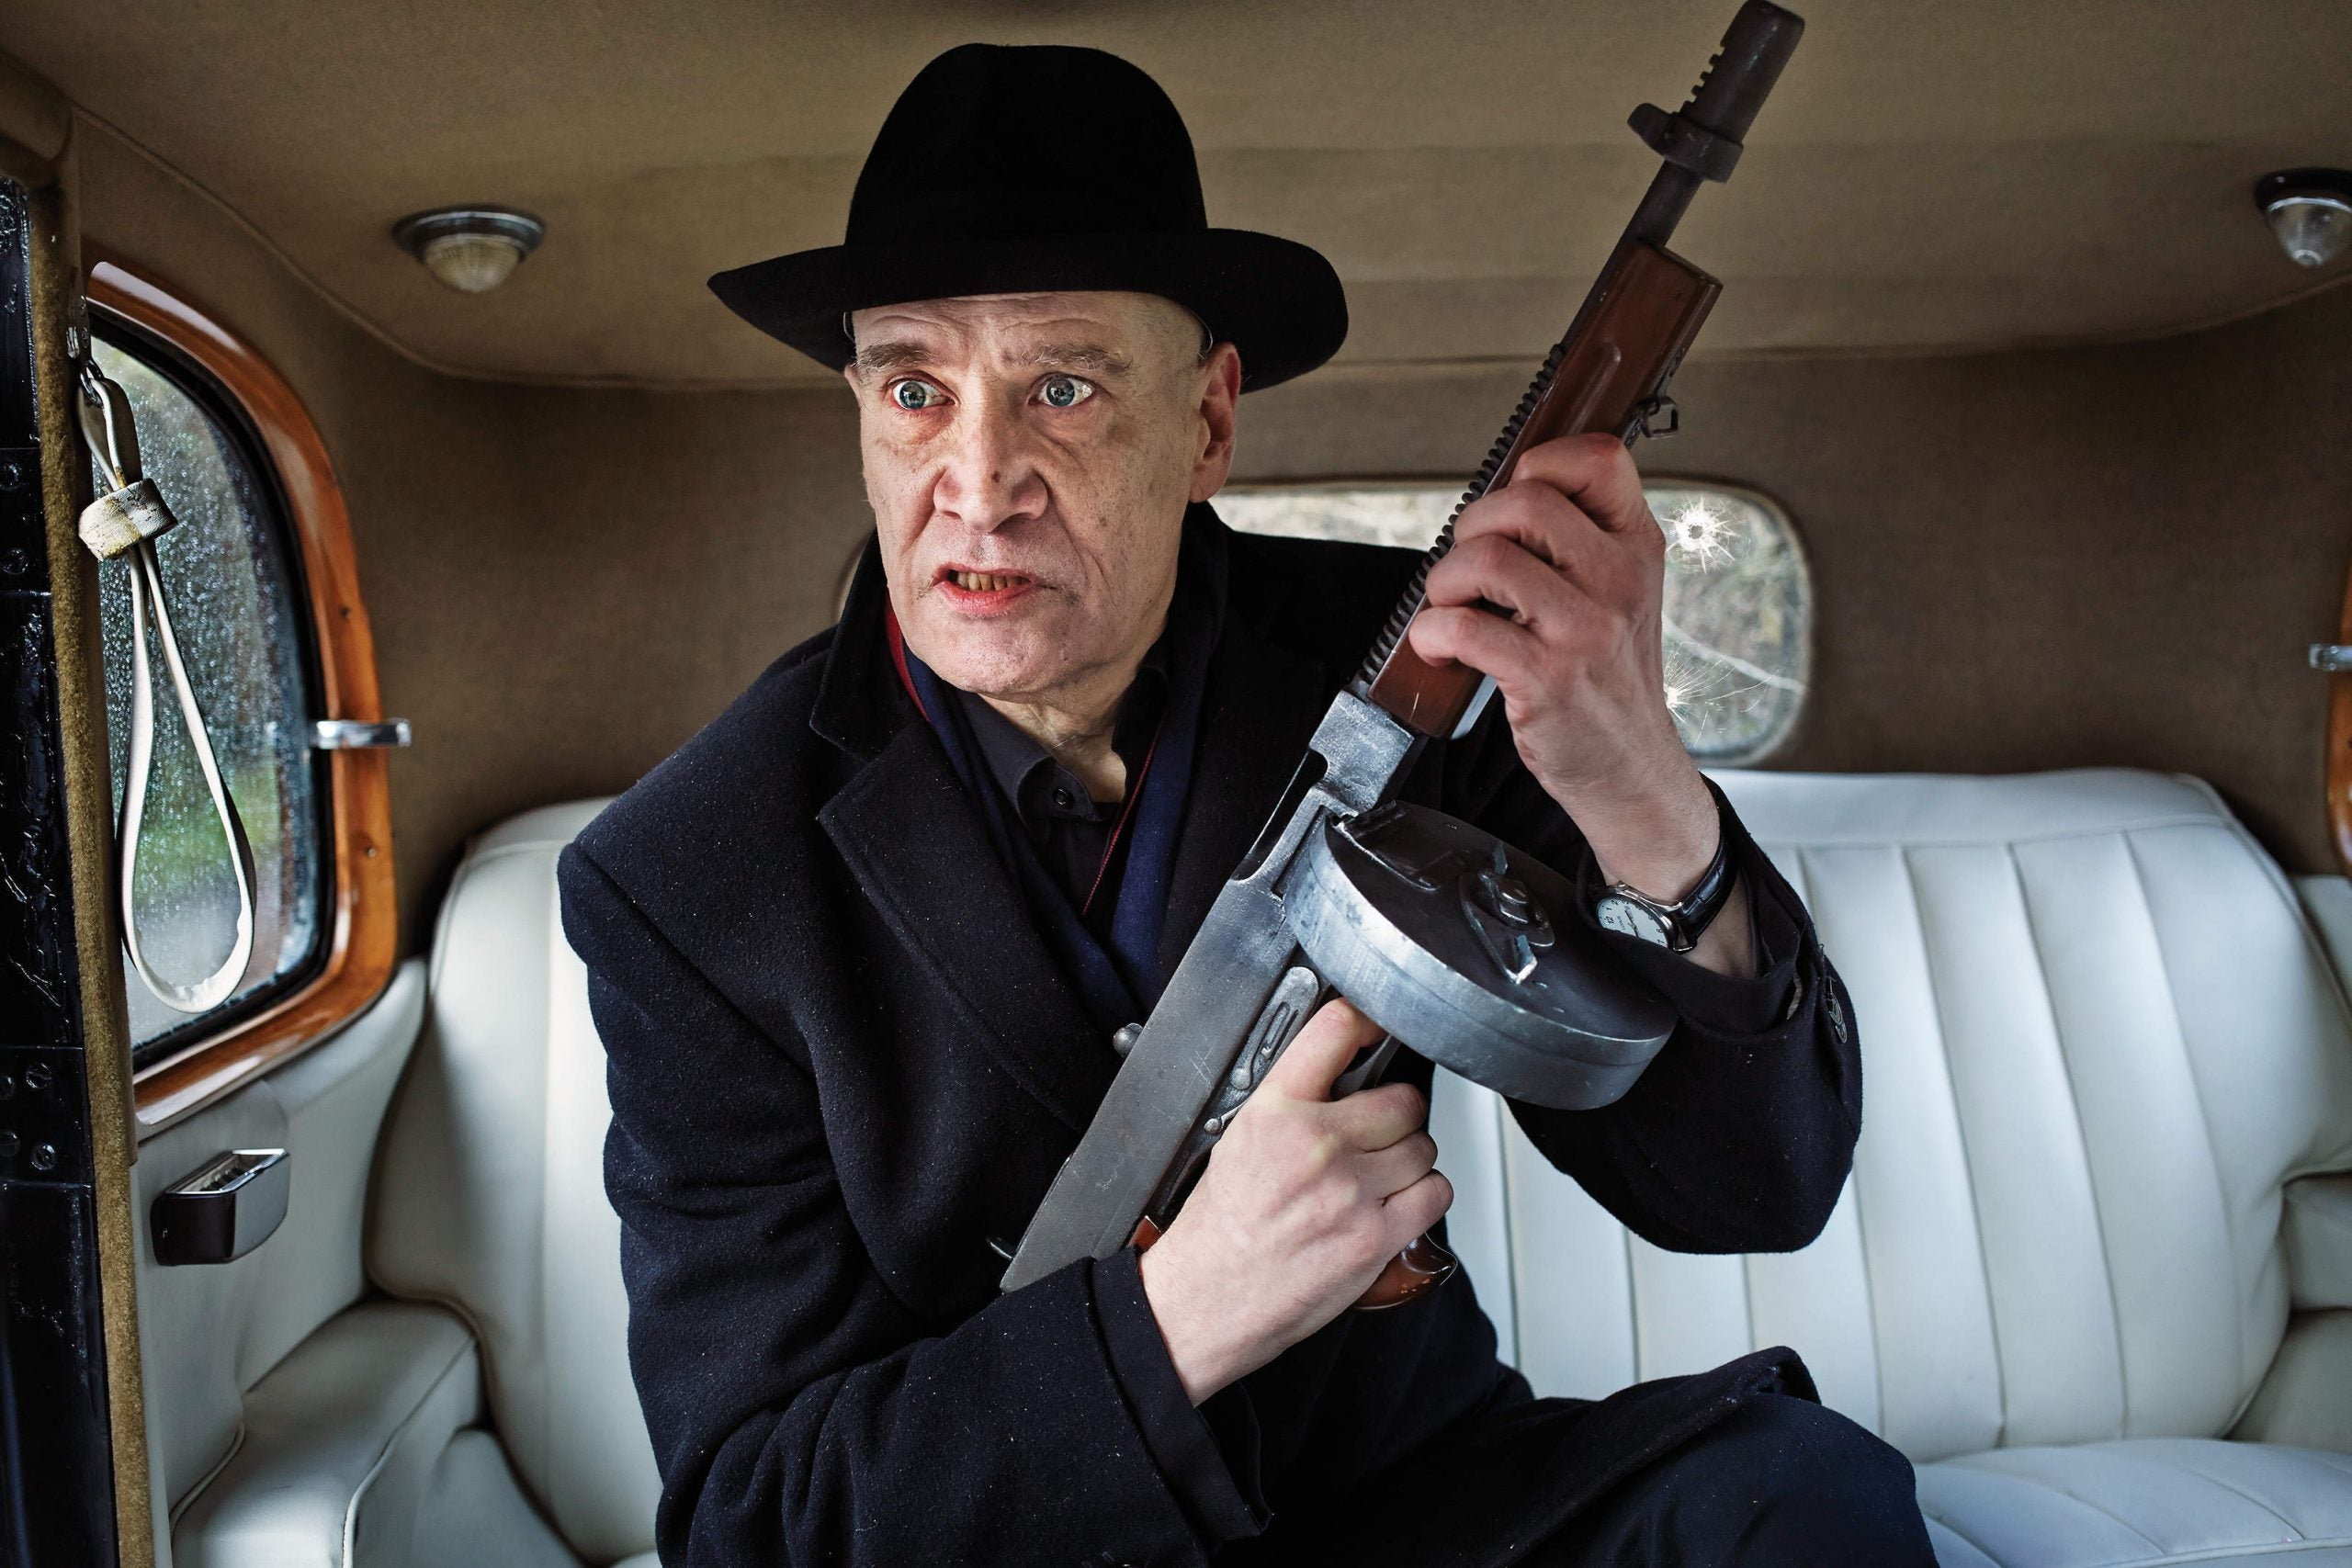 Last year, Wilko Johnson cheated death - now he's back, and bloody annoyed